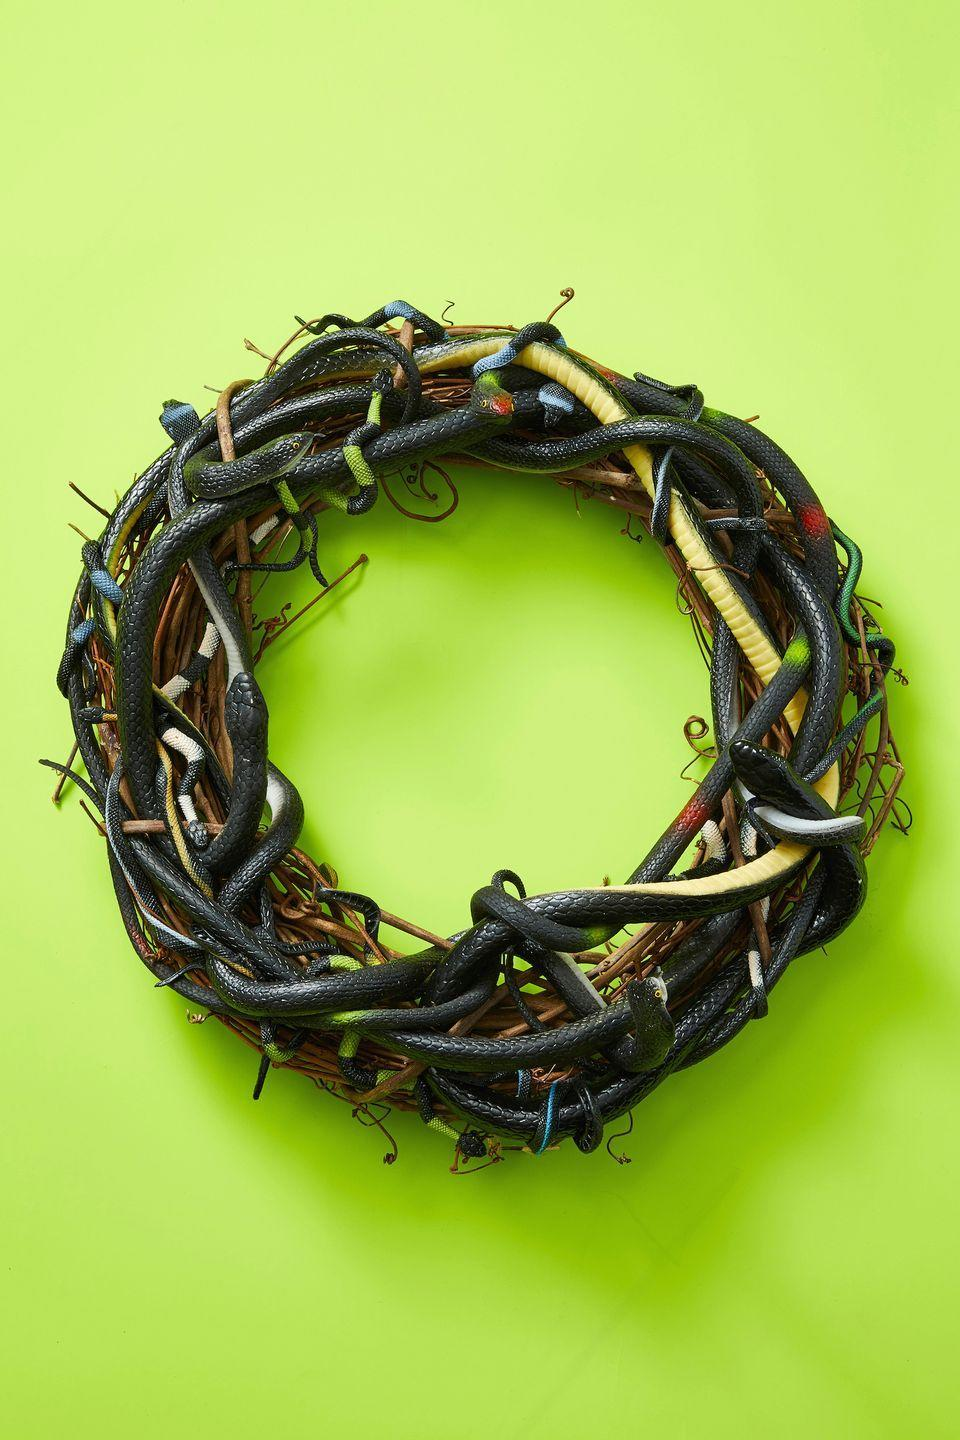 """<p>Spook the neighbors with this snake-laden wreath. To make it, weave plastic snakes, from large to small, between the wreath's twigs, repeating until you use all of the rubber snakes. Use hot glue as needed to attach them to the wreath. </p><p><a class=""""link rapid-noclick-resp"""" href=""""https://www.amazon.com/Fun-Central-Rubber-Snakes-Garden/dp/B01C4OTKAU/?tag=syn-yahoo-20&ascsubtag=%5Bartid%7C10055.g.421%5Bsrc%7Cyahoo-us"""" rel=""""nofollow noopener"""" target=""""_blank"""" data-ylk=""""slk:SHOP RUBBER SNAKES"""">SHOP RUBBER SNAKES</a> </p><p><strong>RELATED</strong>: <a href=""""https://www.goodhousekeeping.com/home/craft-ideas/how-to/g859/fall-wreaths/"""" rel=""""nofollow noopener"""" target=""""_blank"""" data-ylk=""""slk:30+ Fall Wreaths to Welcome the Season in Style"""" class=""""link rapid-noclick-resp"""">30+ Fall Wreaths to Welcome the Season in Style</a></p>"""